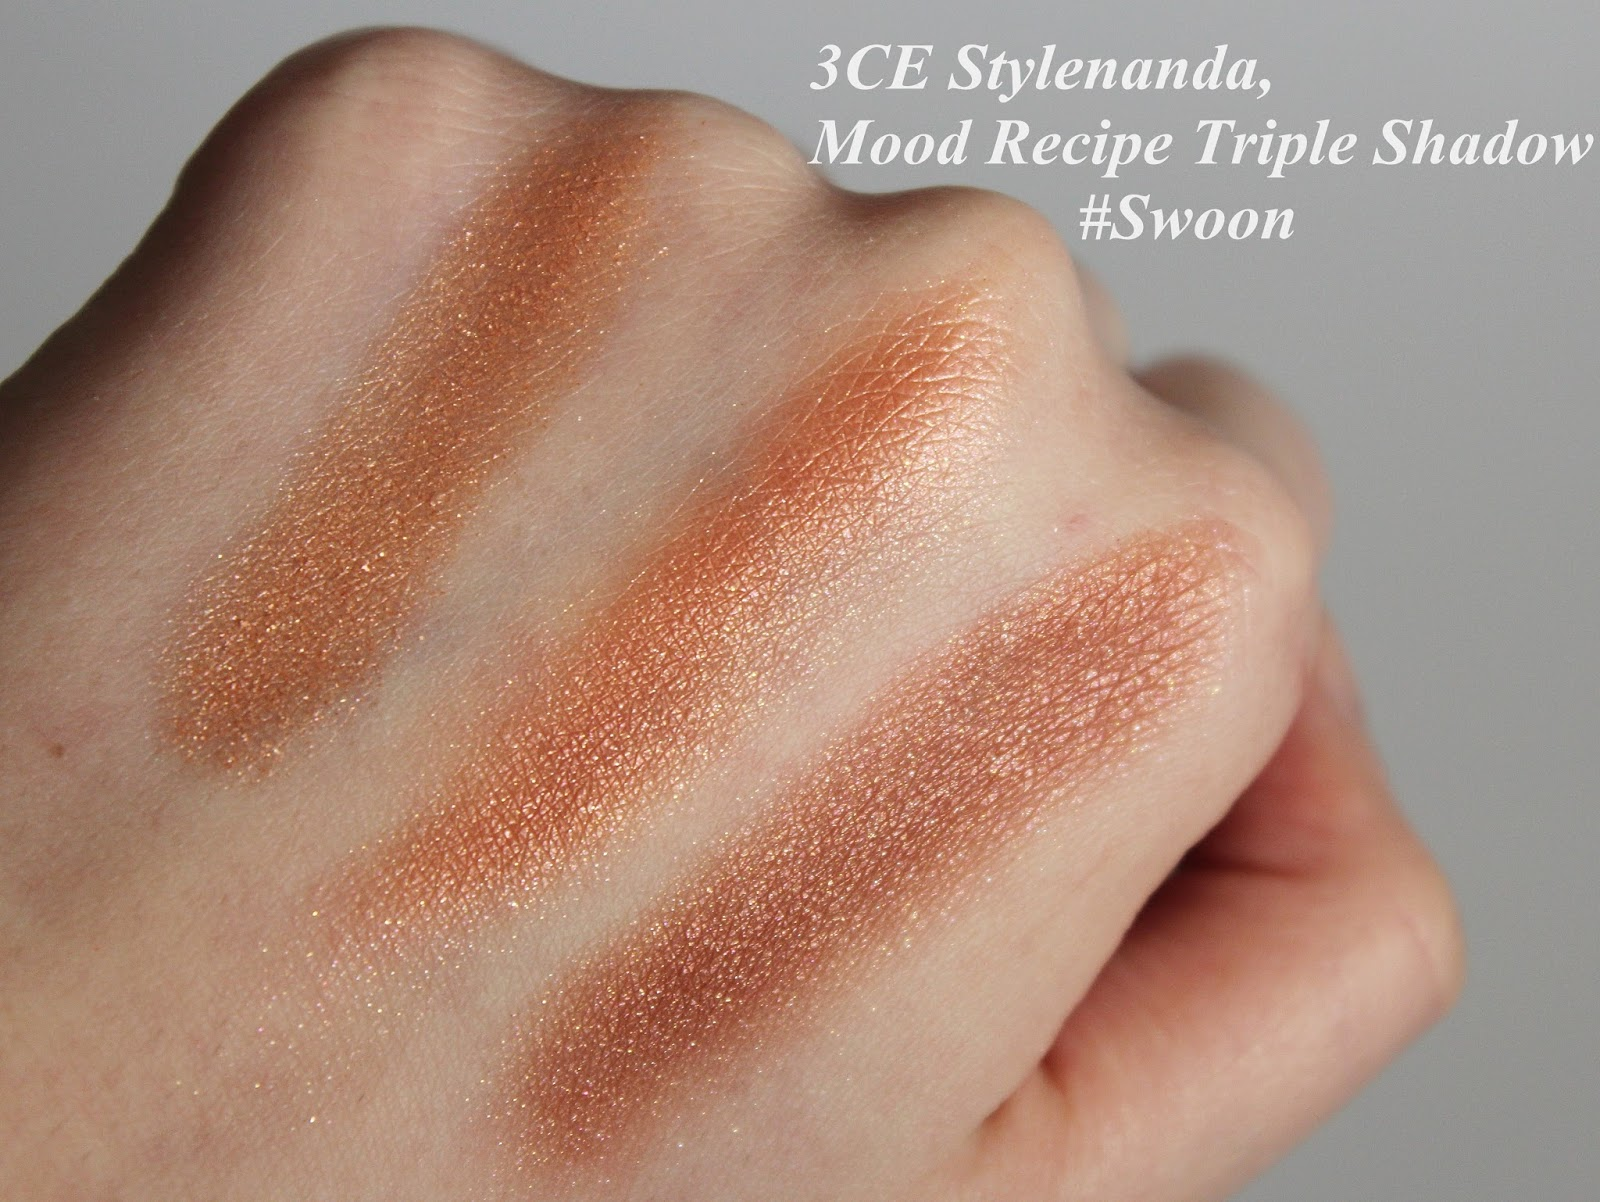 3CE Stylenanda, Mood Recipe Triple Shadow #Swoon